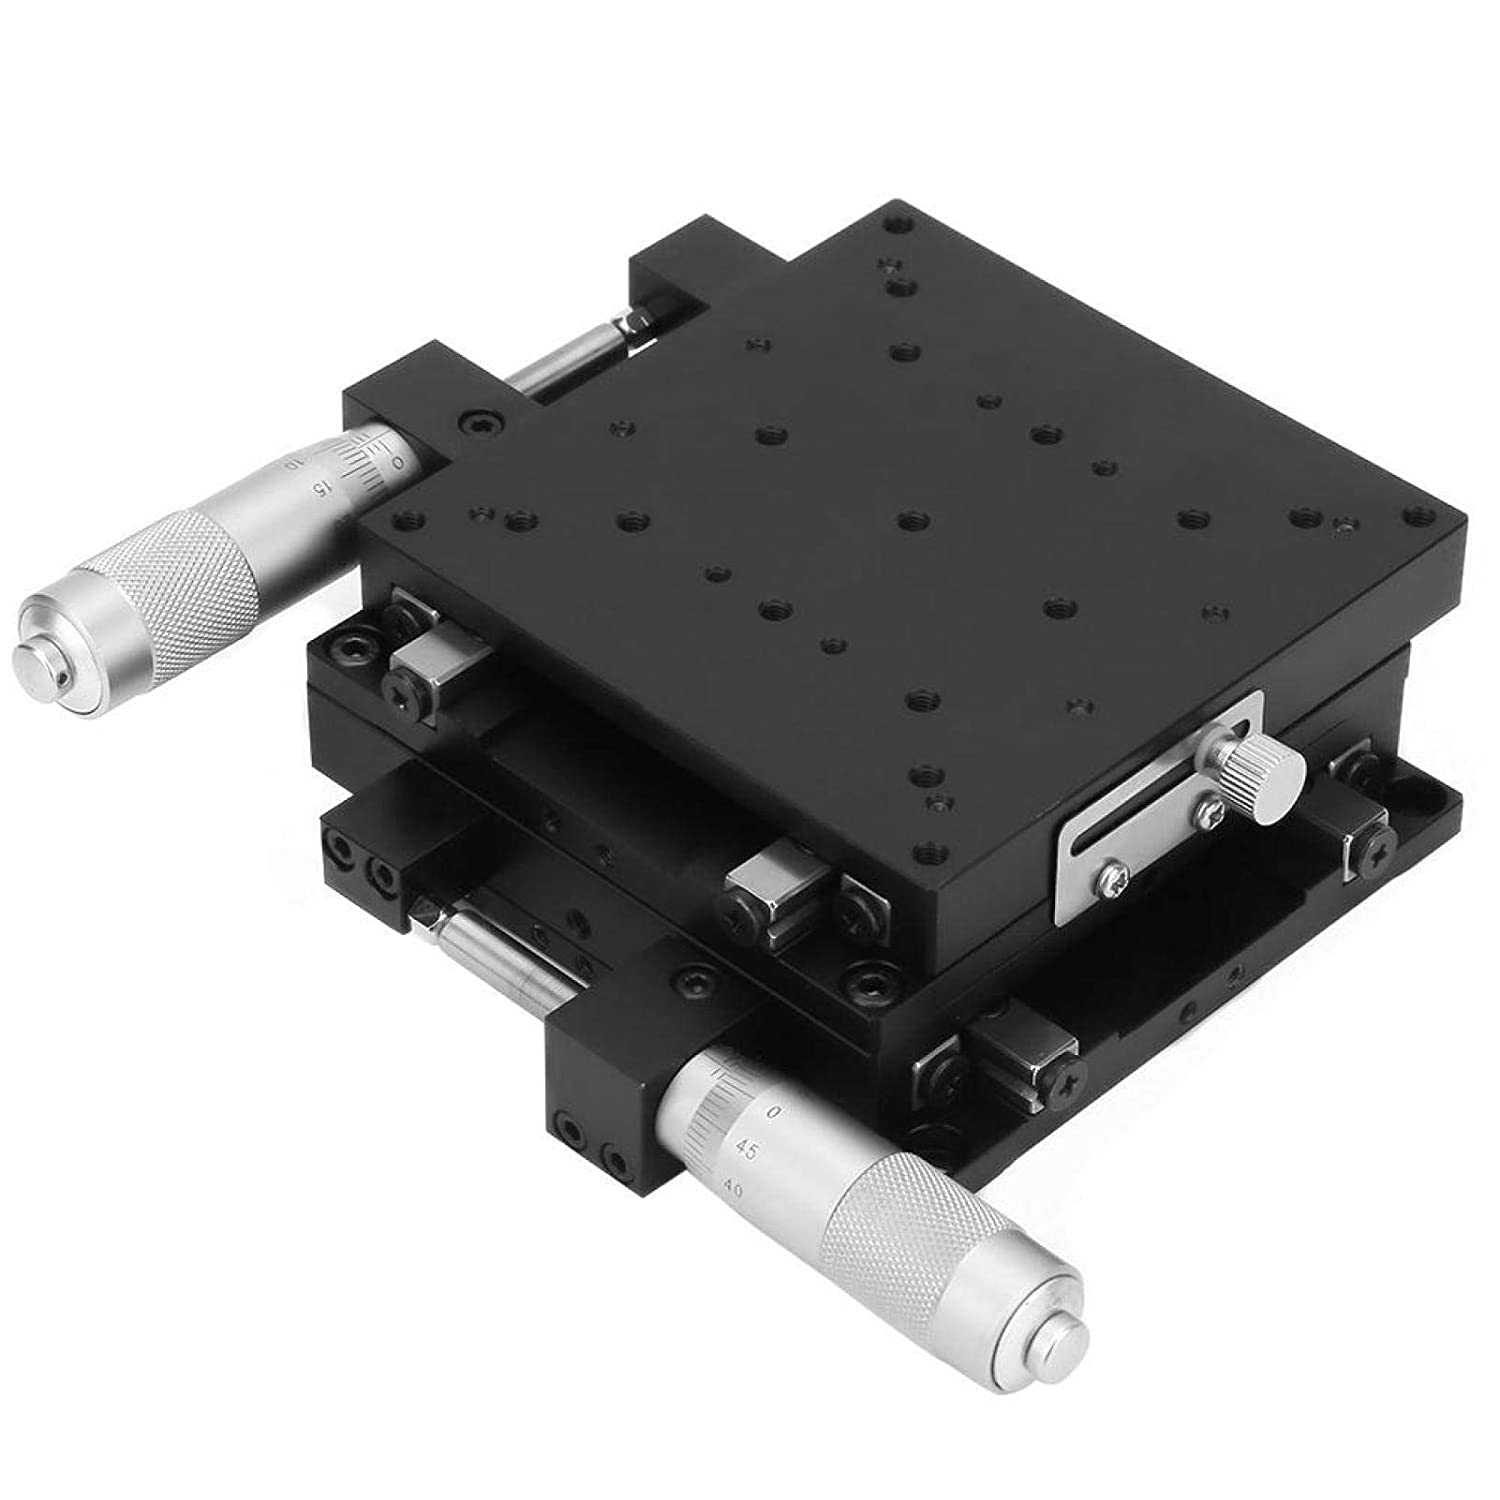 XY Micrometer Manual Fine‑Tuning Cross Roller Accuracy Linear Stages 10010040mm,Micrometer Manual Precision Linear Translation Stage